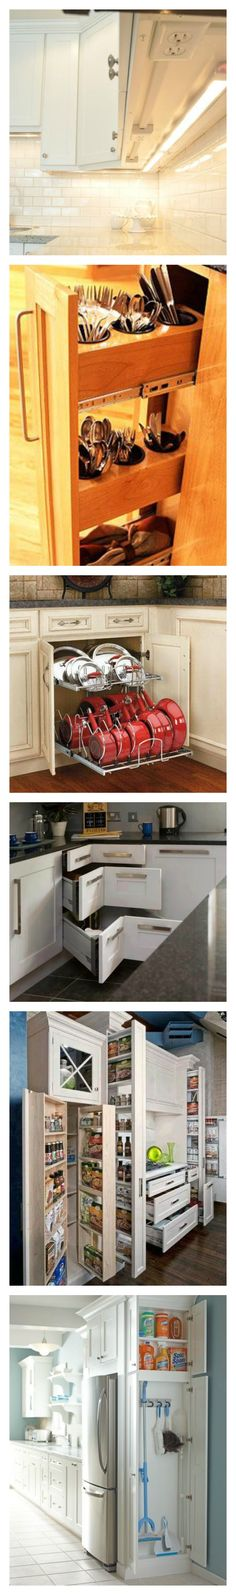 Kitchen Storage * Stow aways, pull outs, great organizing! Keep it clean and simple.